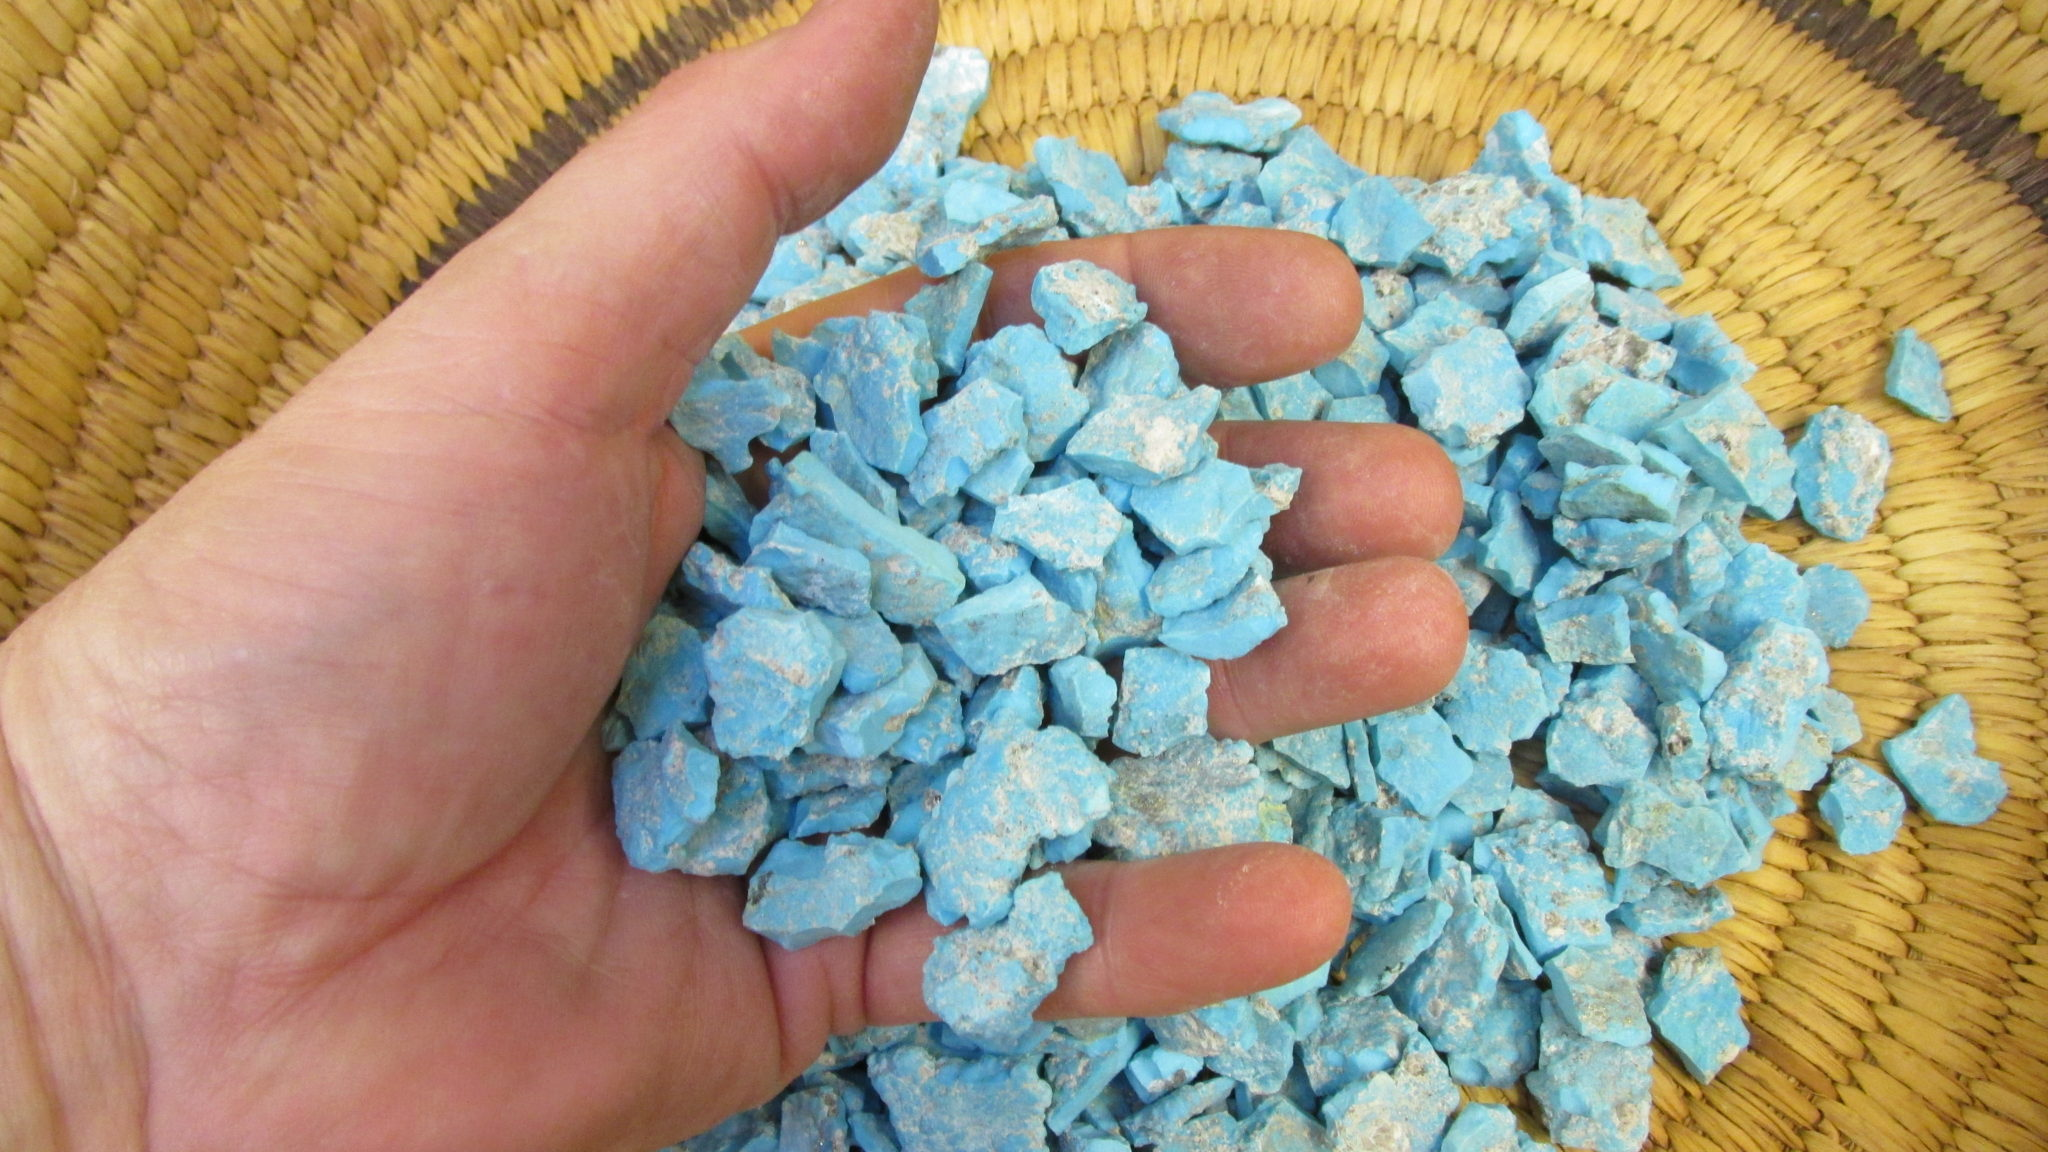 Sleeping Beauty Turquoise rough for your jewelry projects